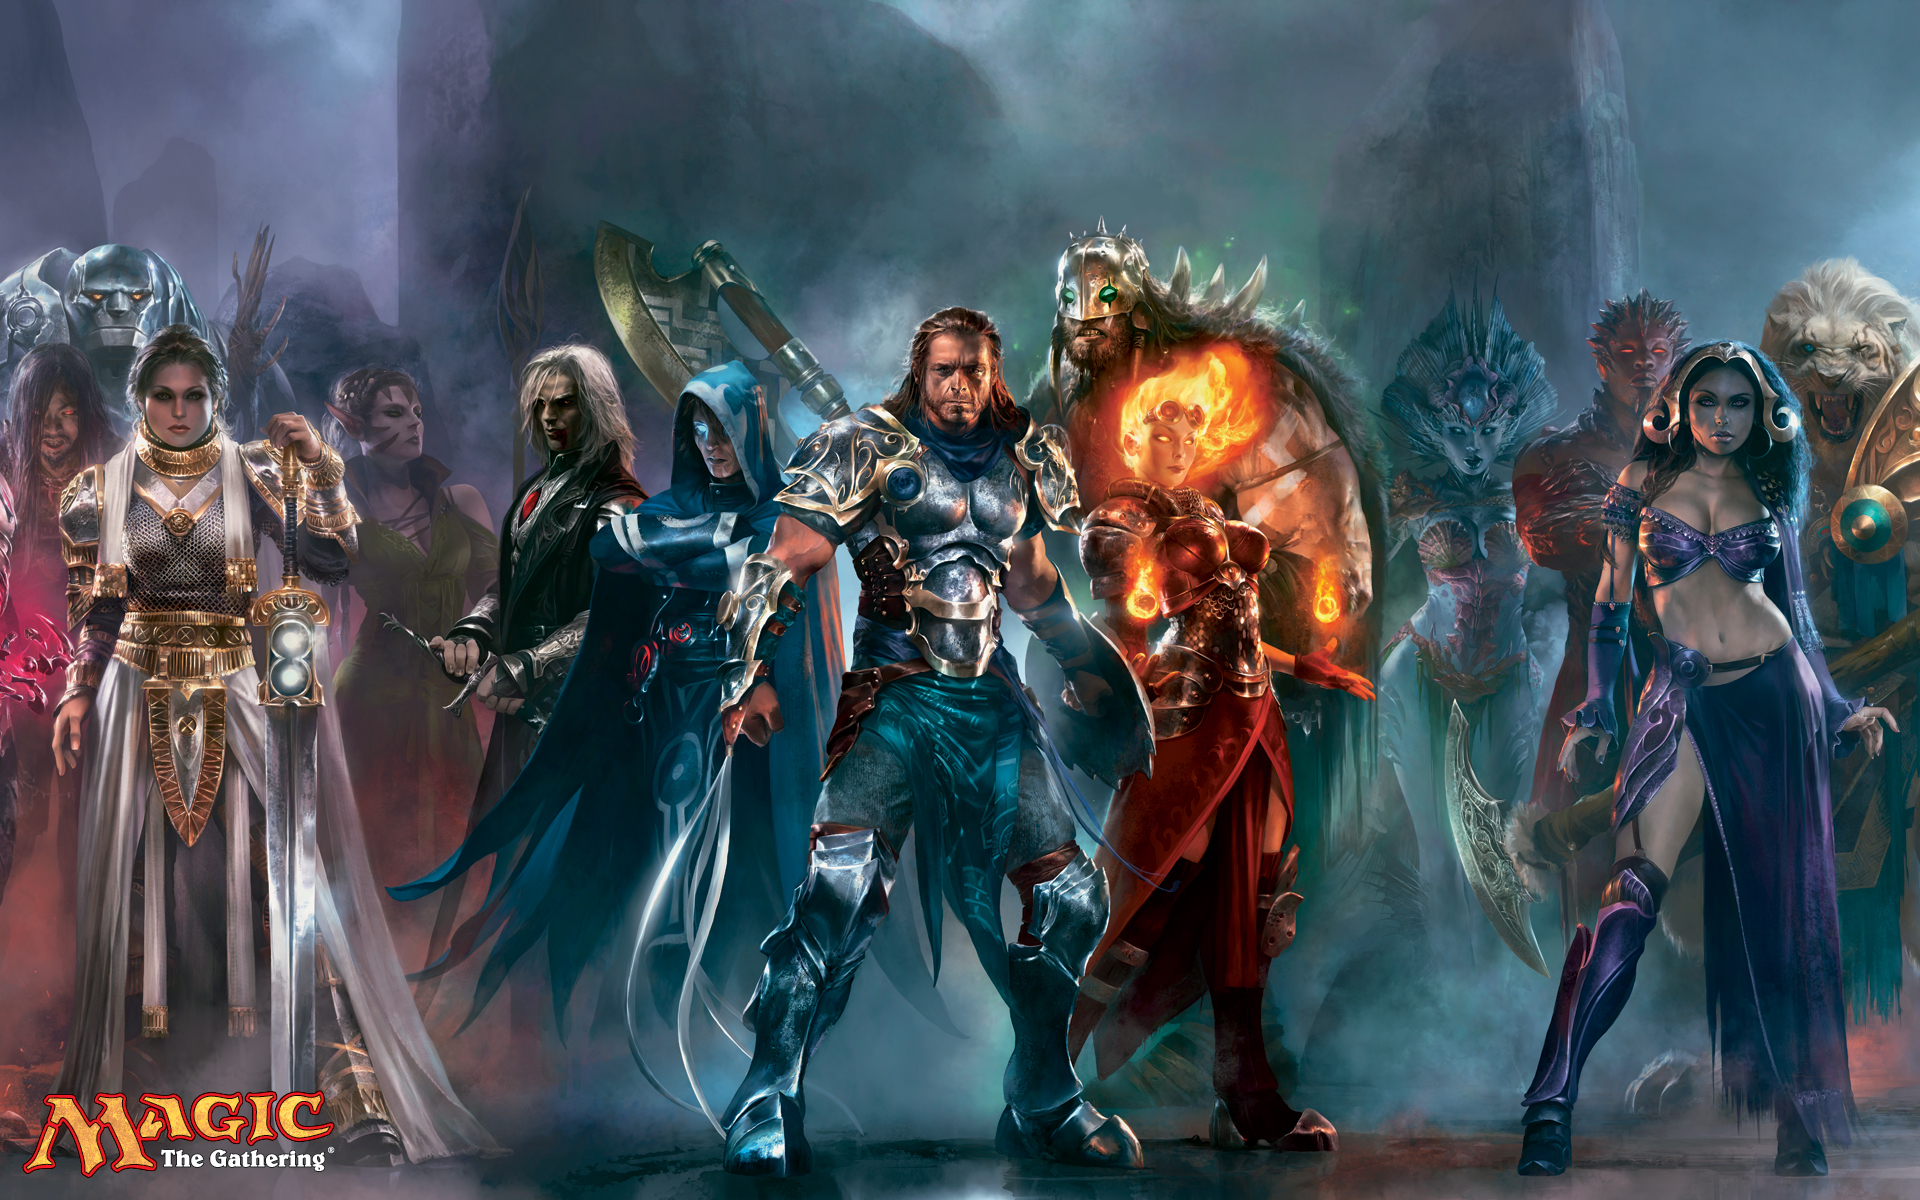 magic: the gathering fantasy HD Wallpaper